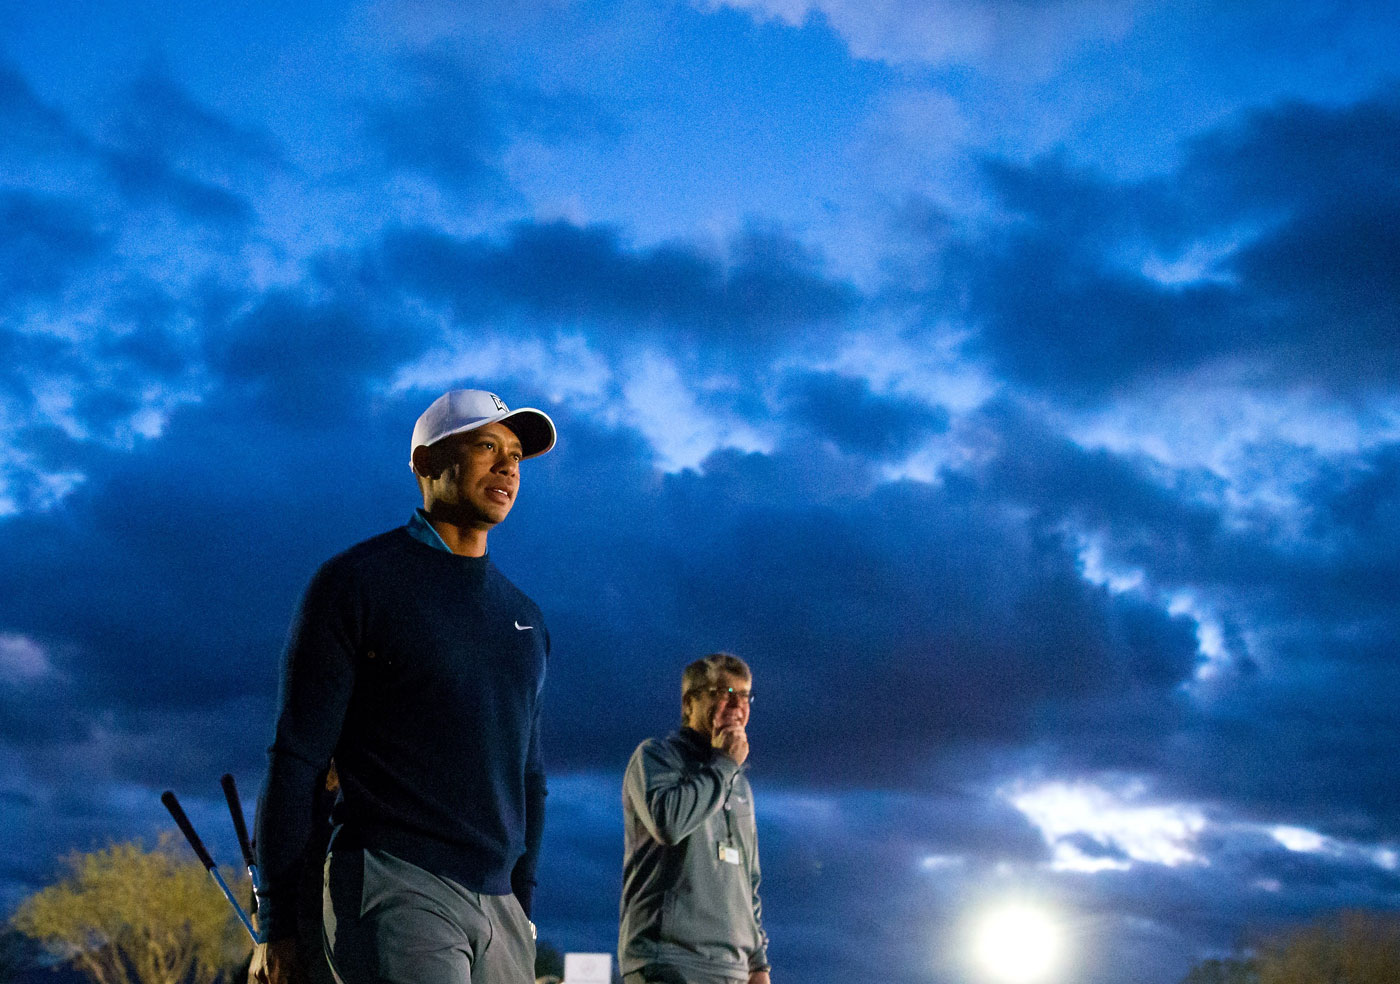 Tiger Woods walks to the driving range before his practice round Tuesday at the Waste Management Phoenix Open.